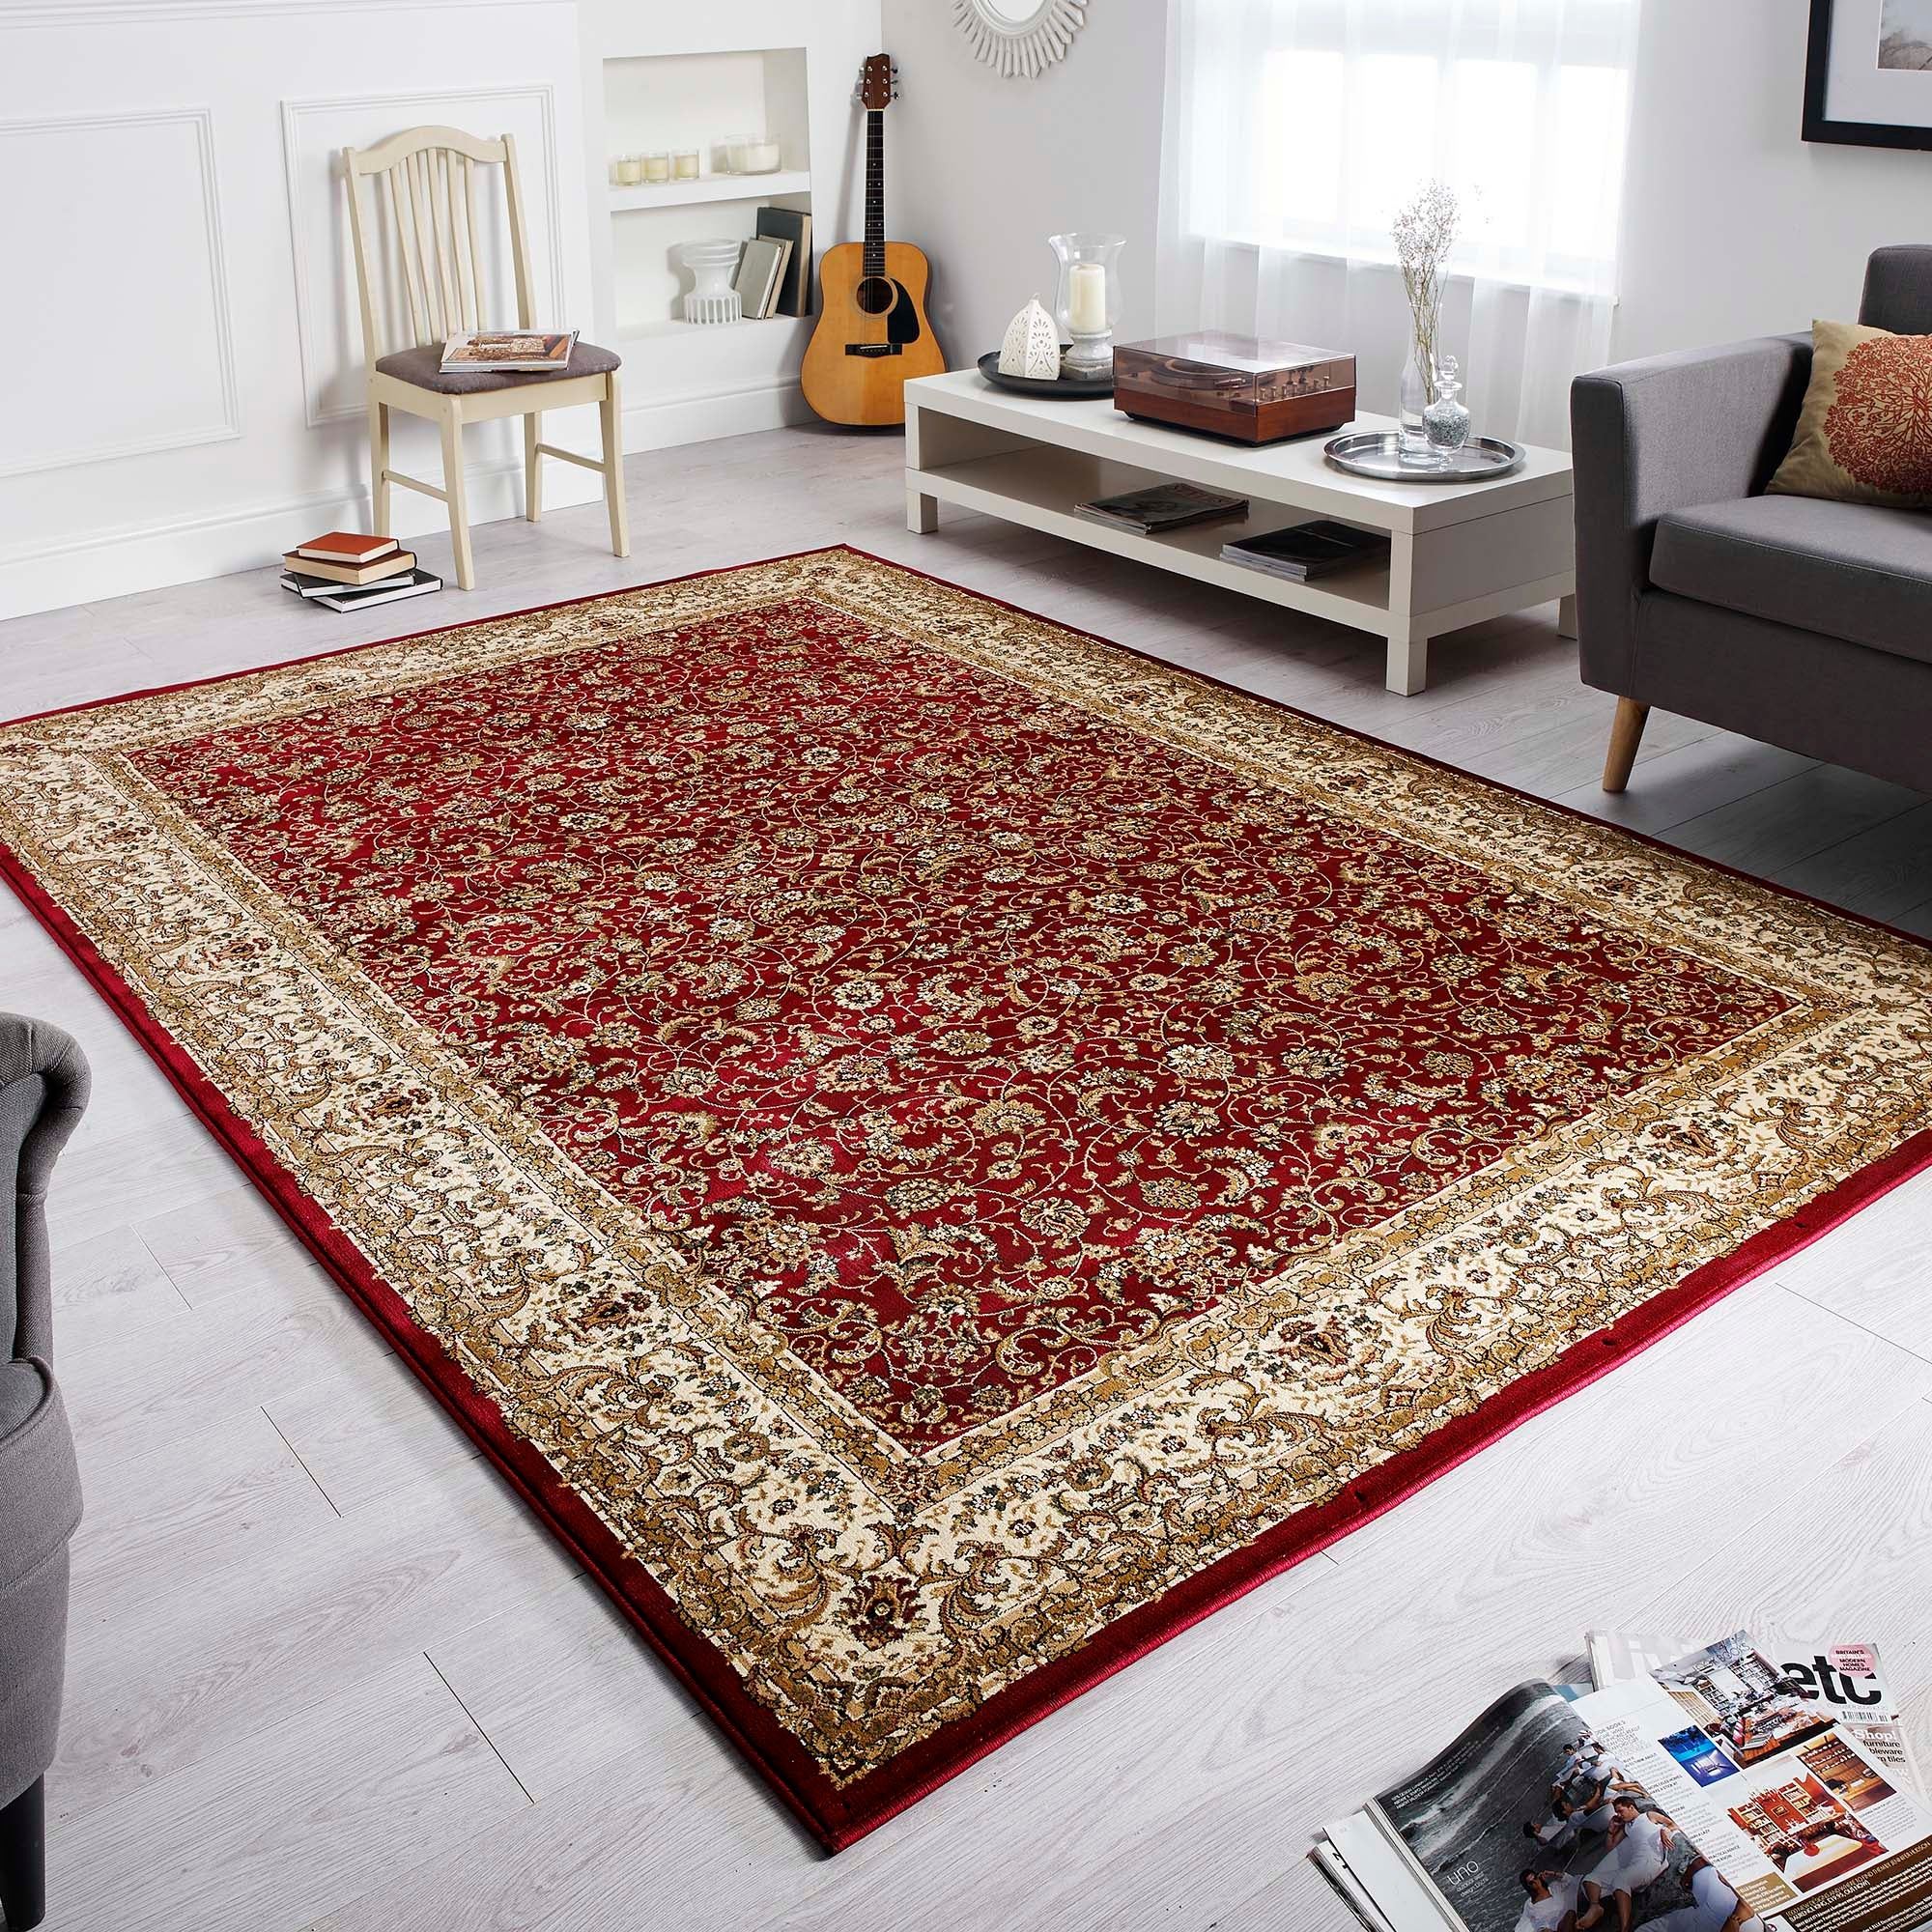 Photo of Oriental rug red